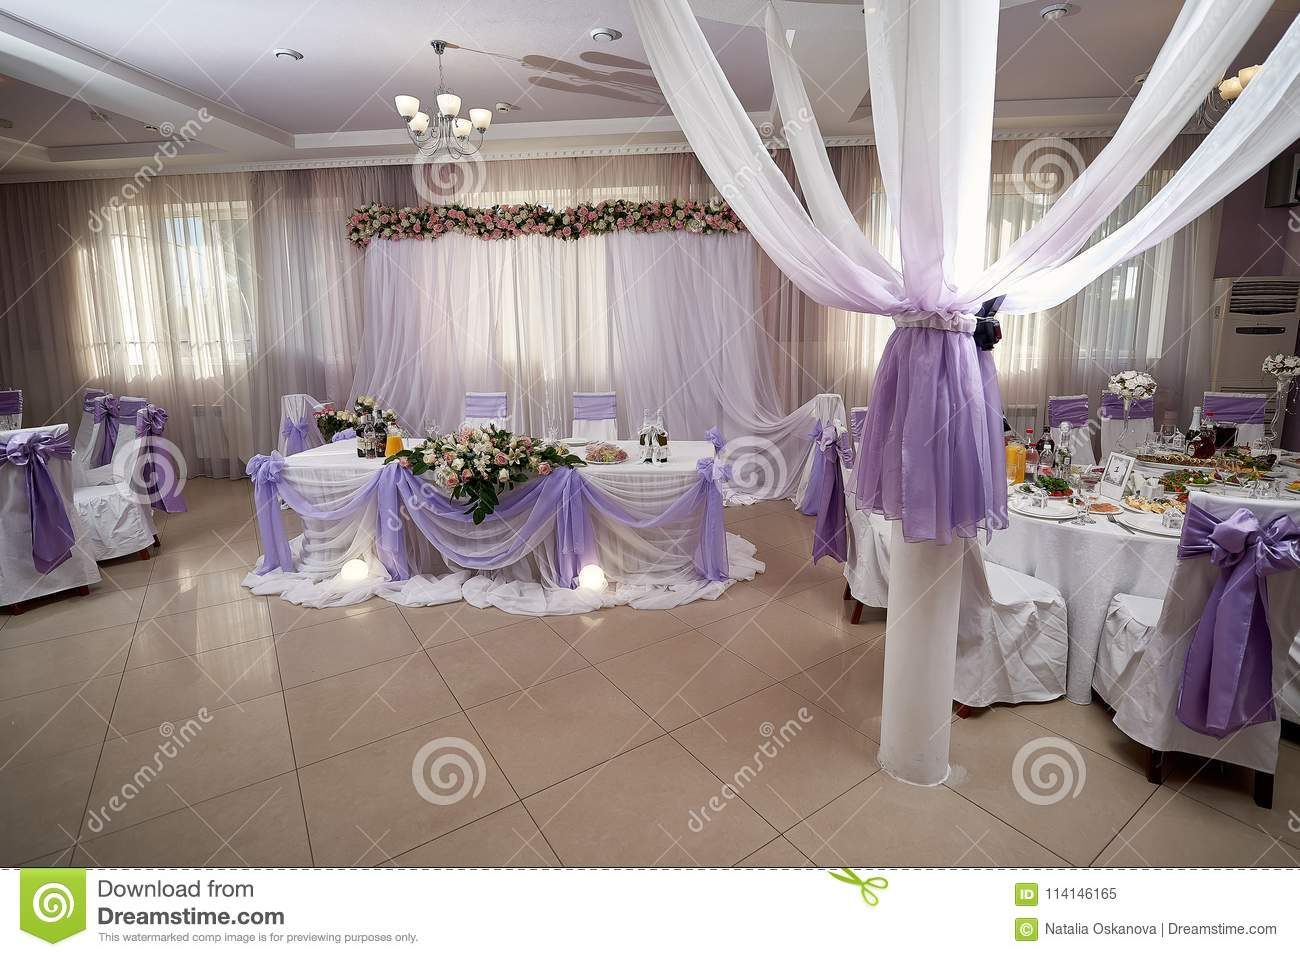 Served Tables In Restaurant For Wedding Reception Stock Image